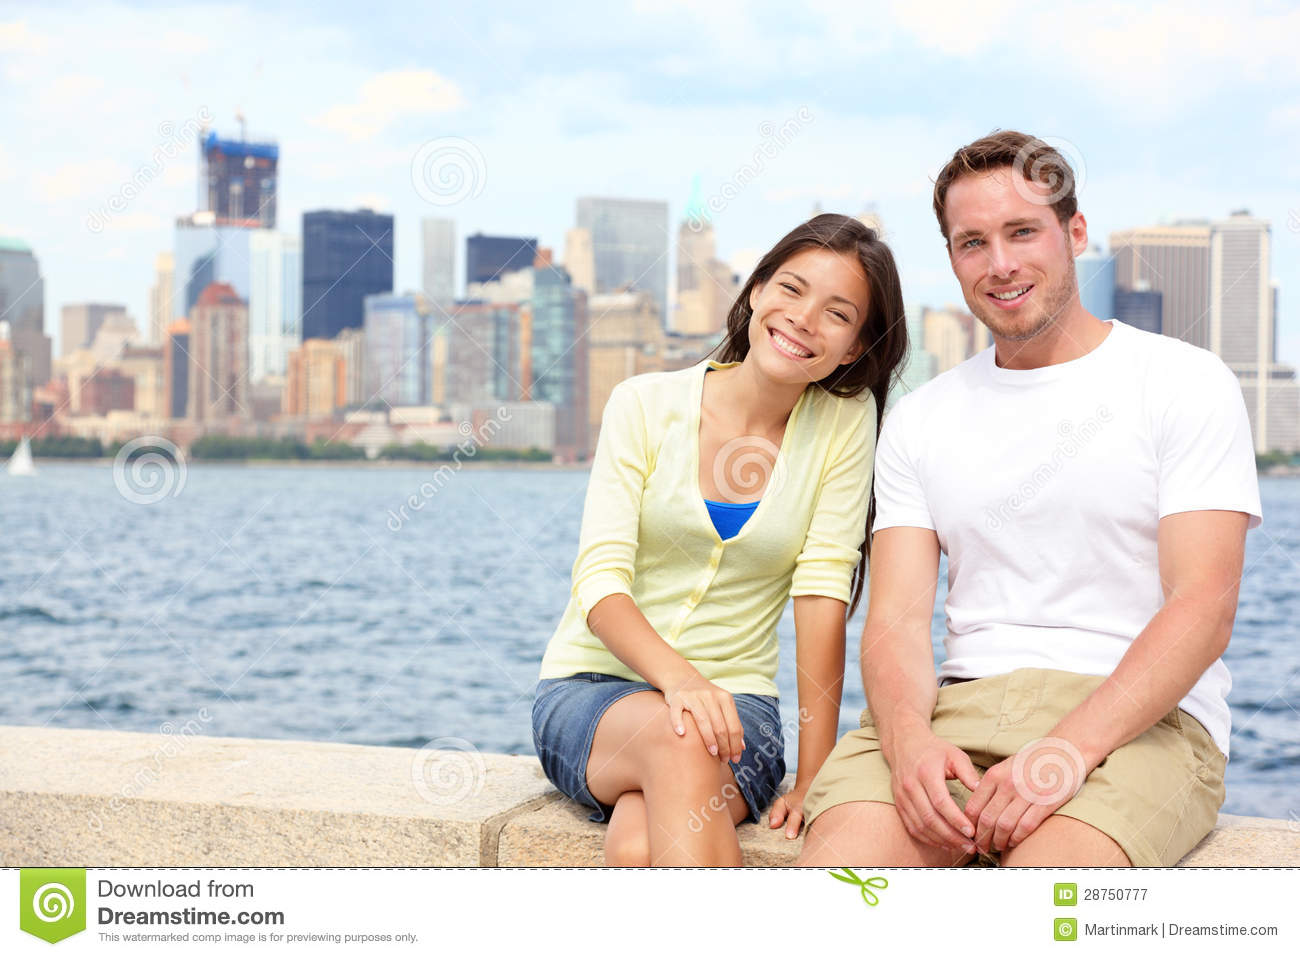 Free online dating sites for couples